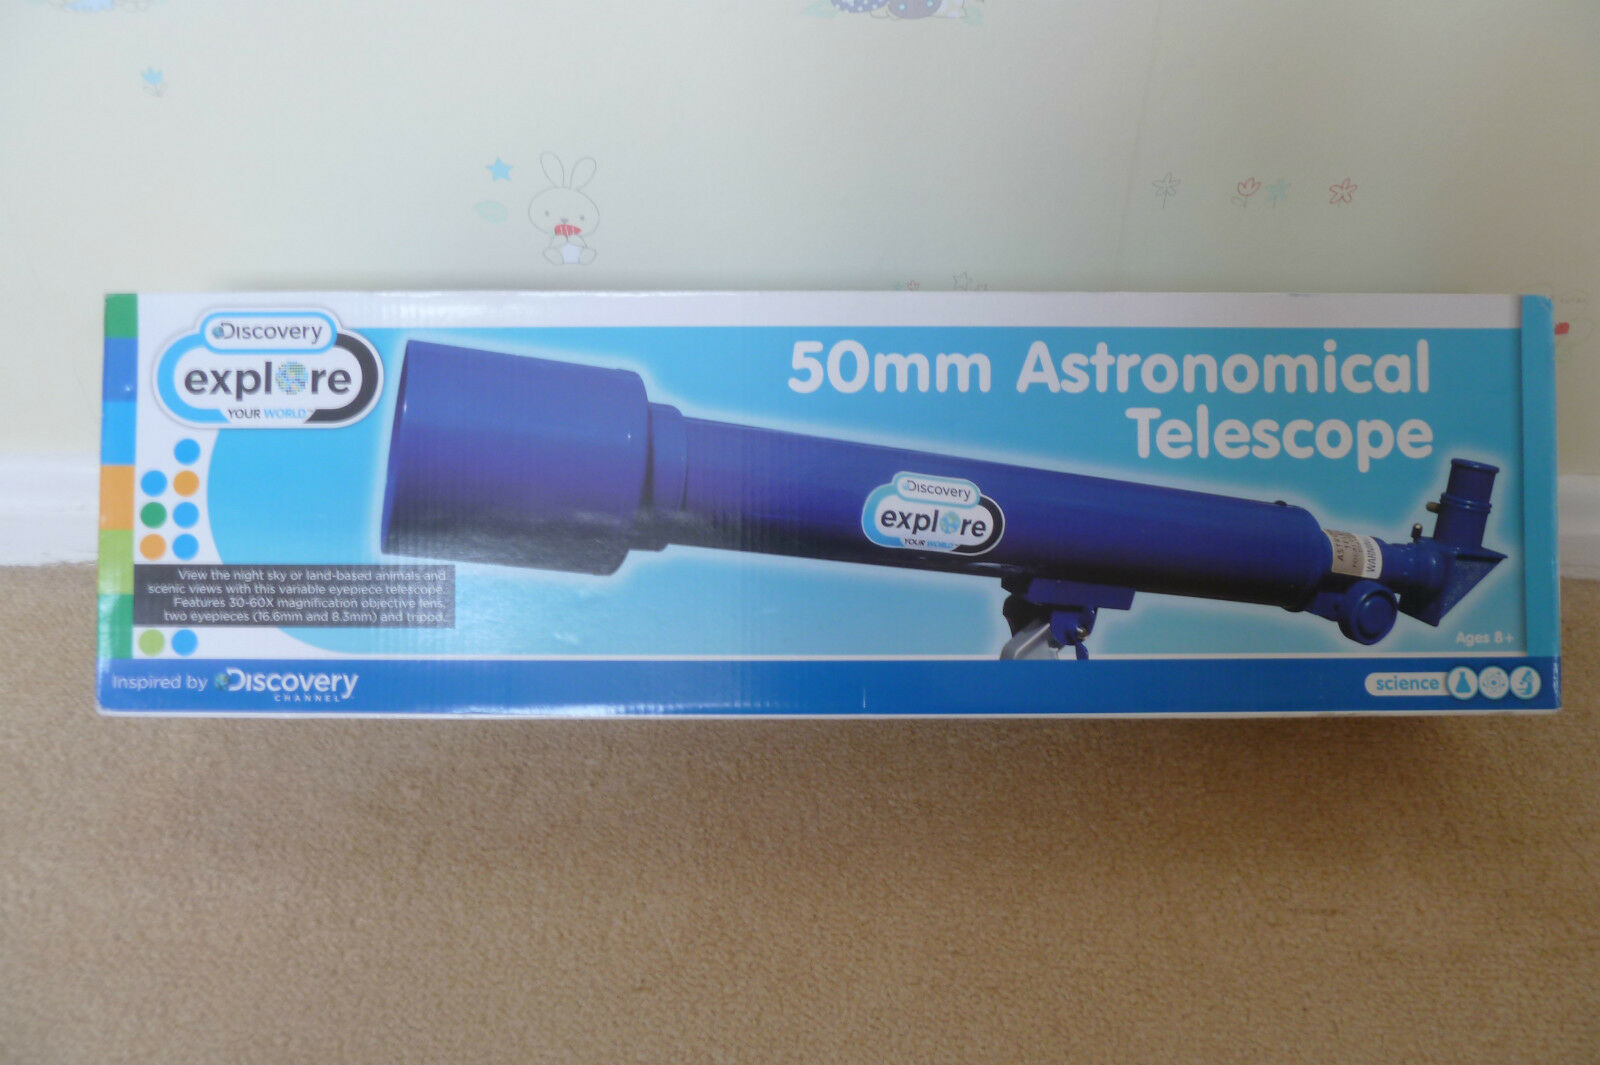 Discovery 50mm Astronomical Telescope with tripod